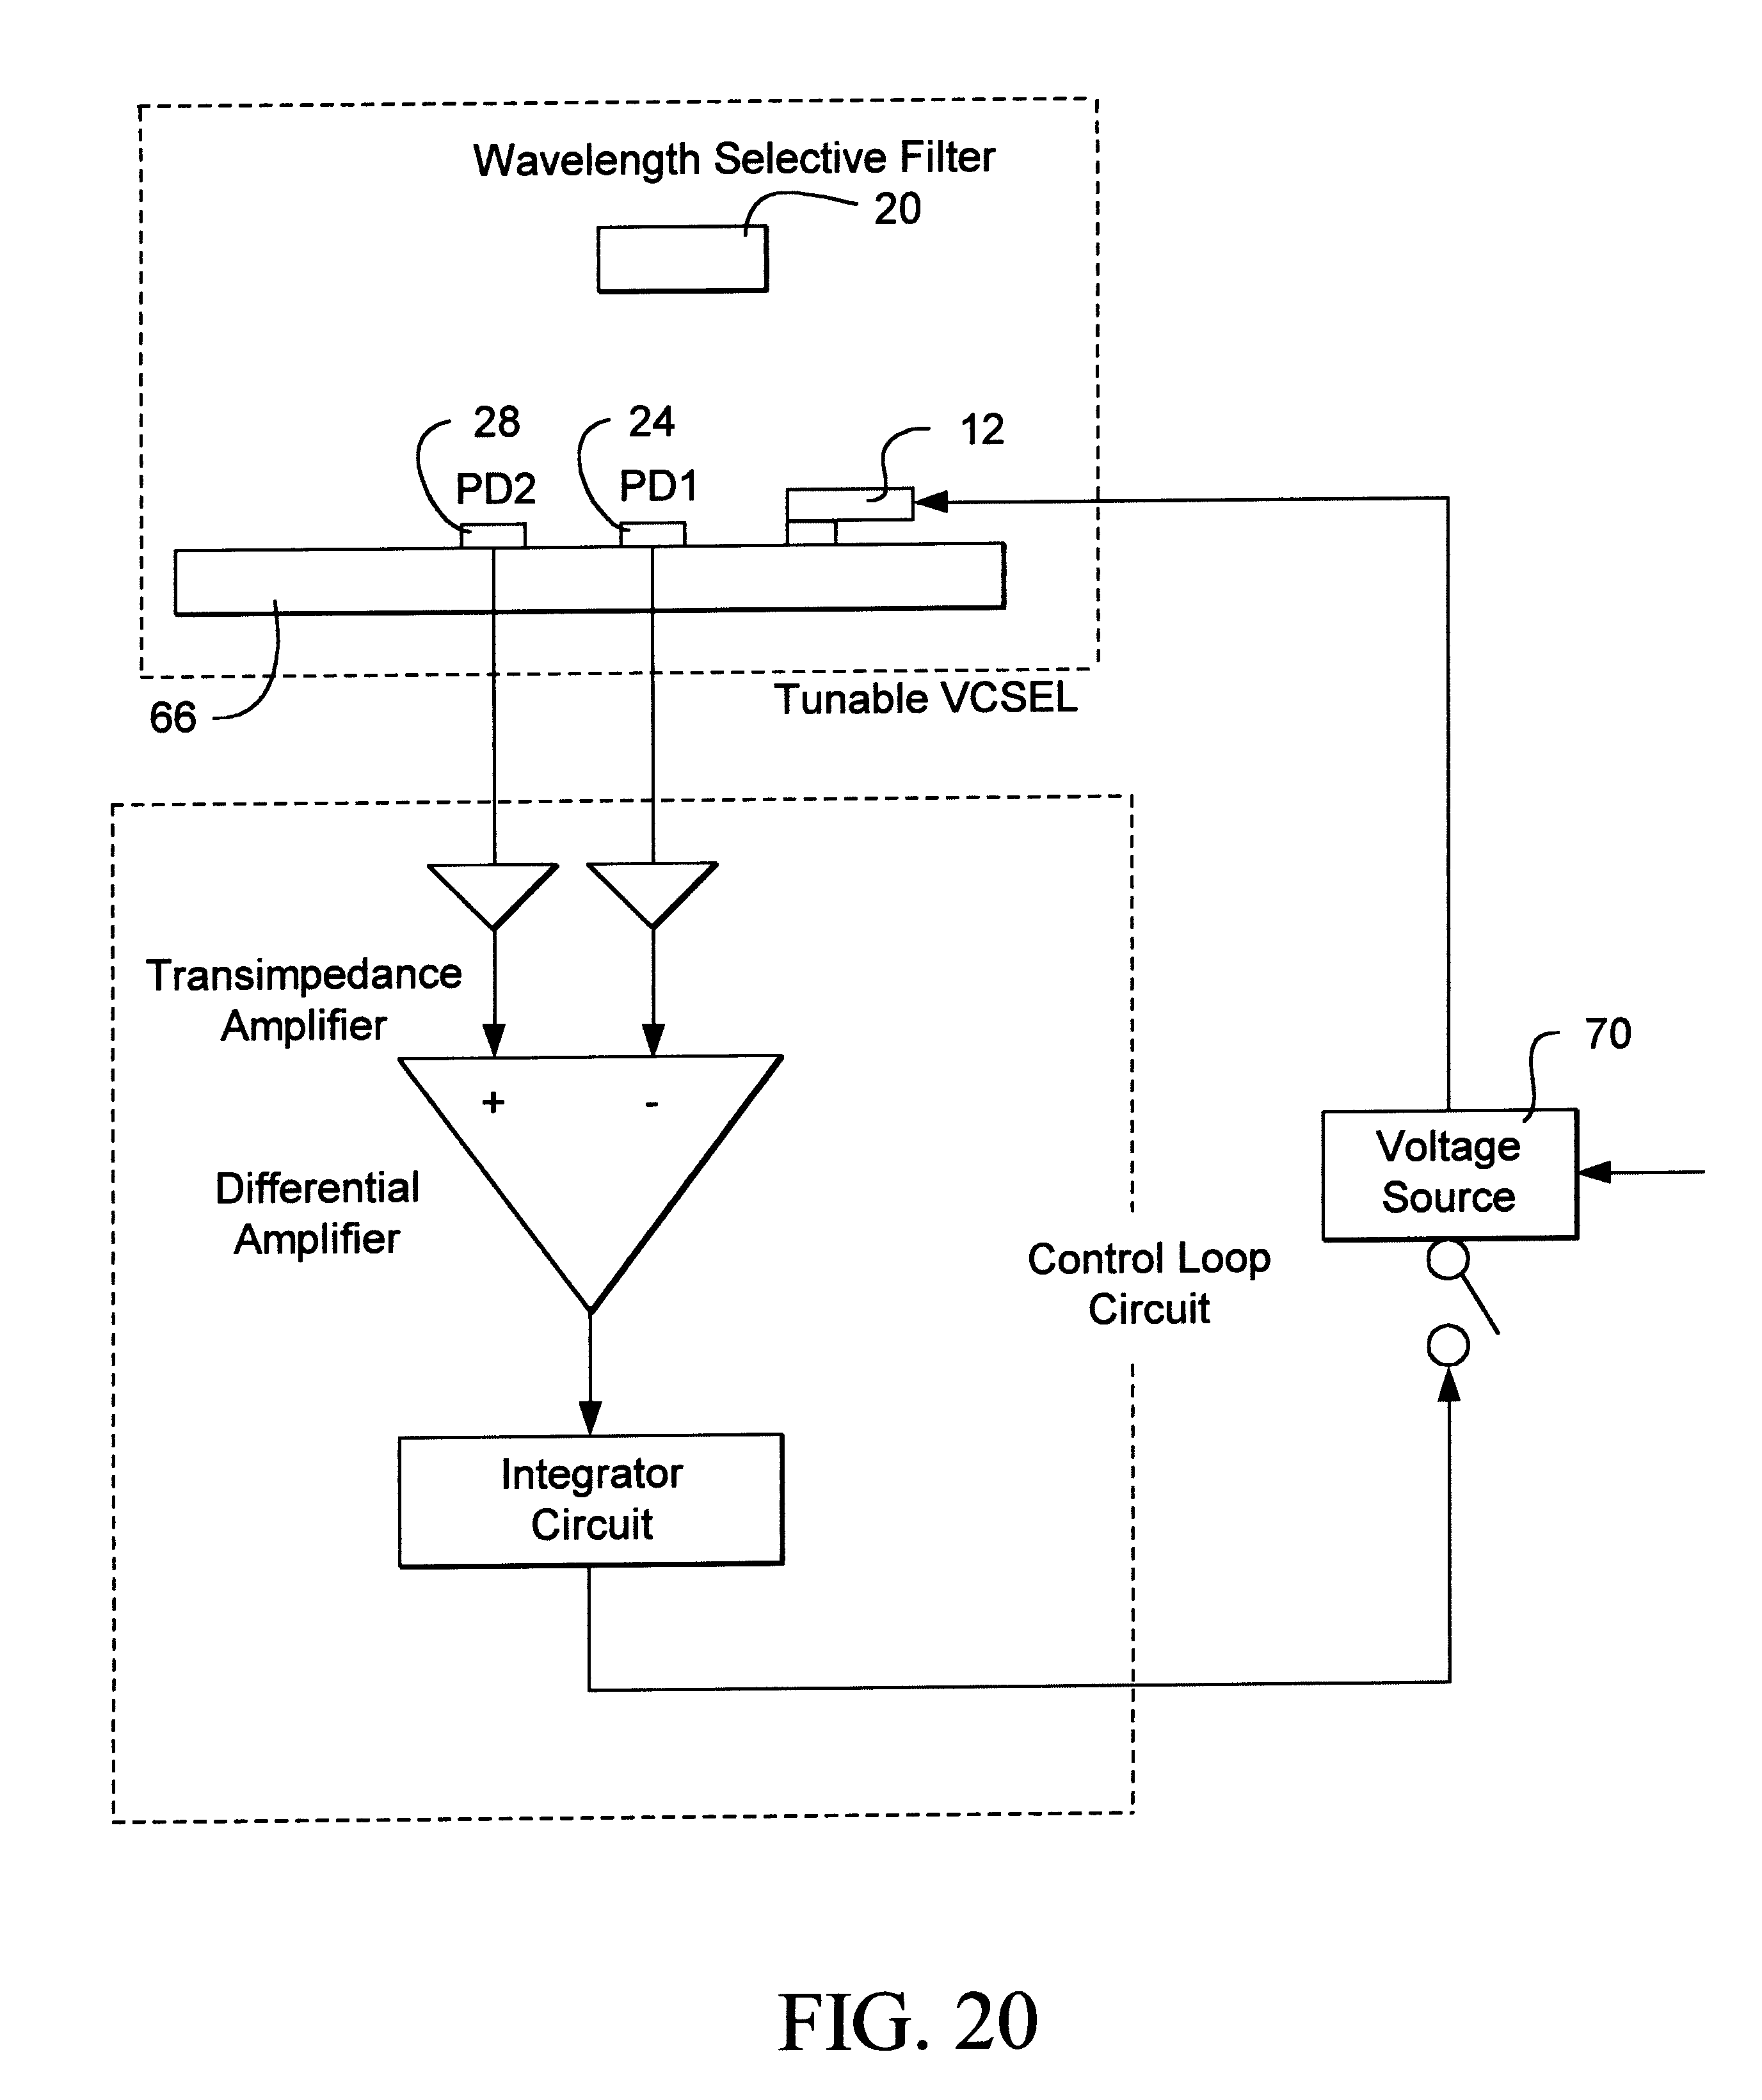 Patent Us6233263 Monitoring And Control Assembly For Wavelength Proposed Transimpedance Amplifier Schematic Drawing